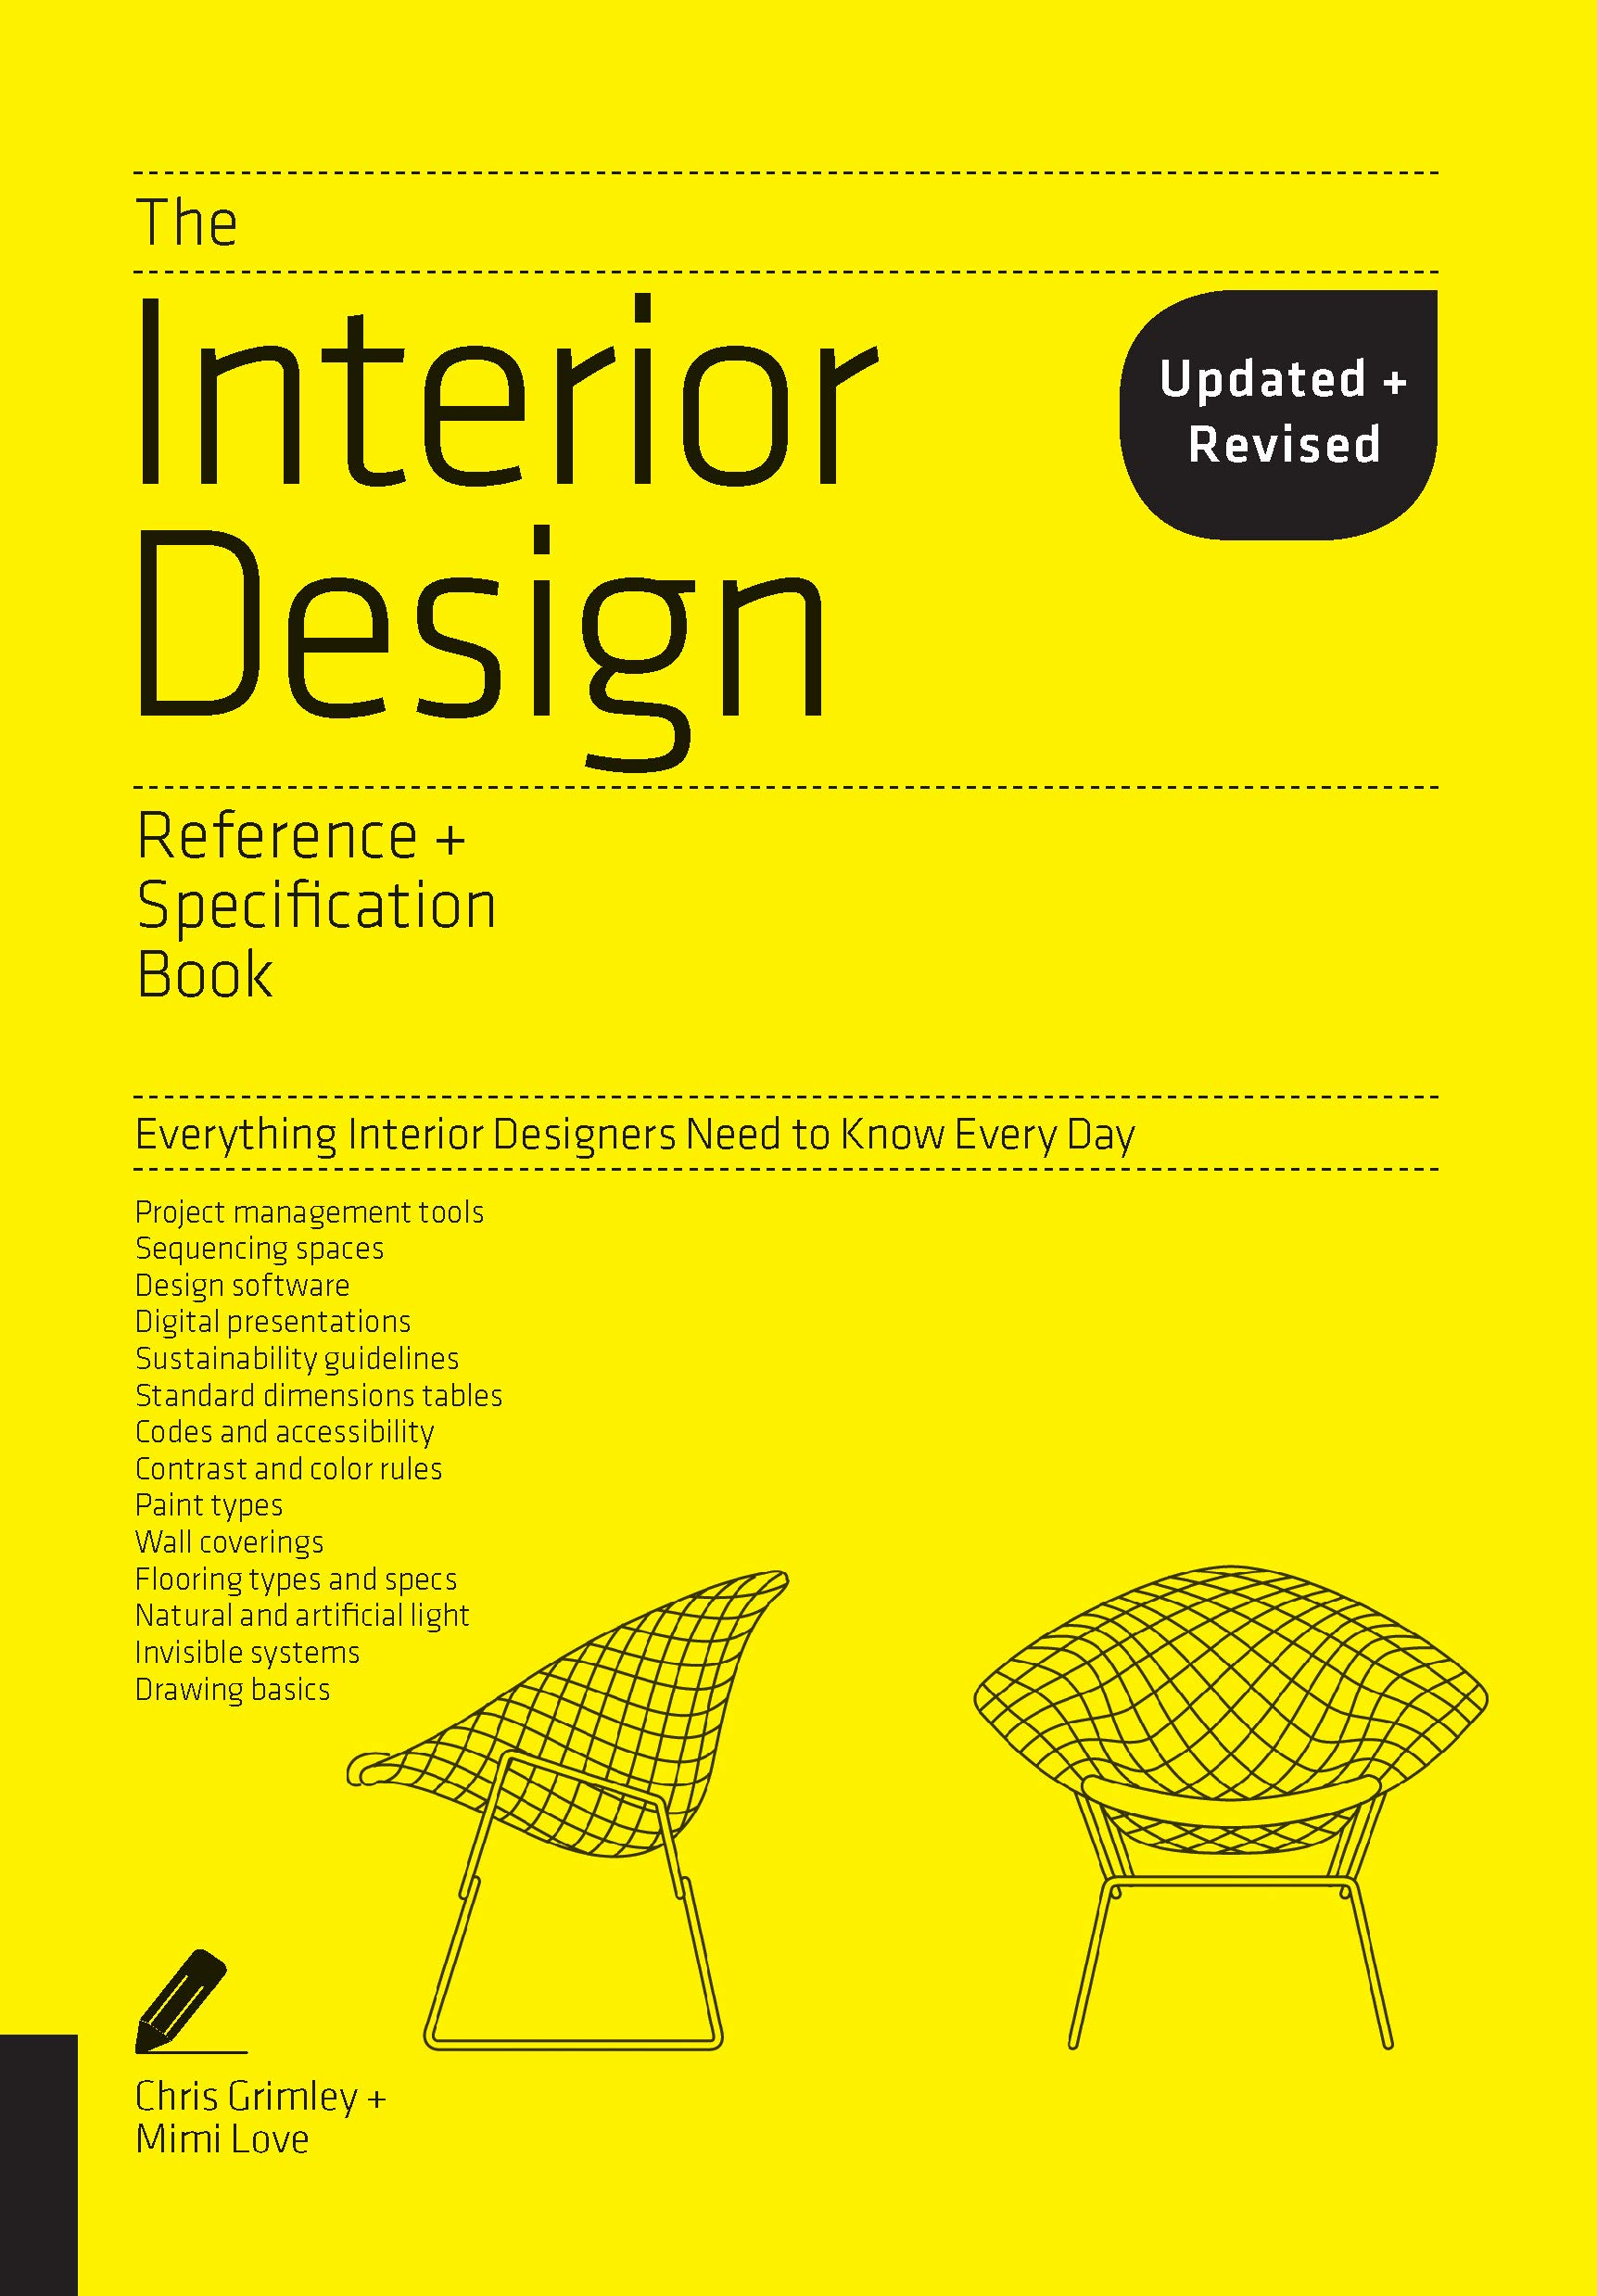 Download Interior Design Reference & Specification Book Updated & Revised: Everything Interior Designers Need to Know Every Day